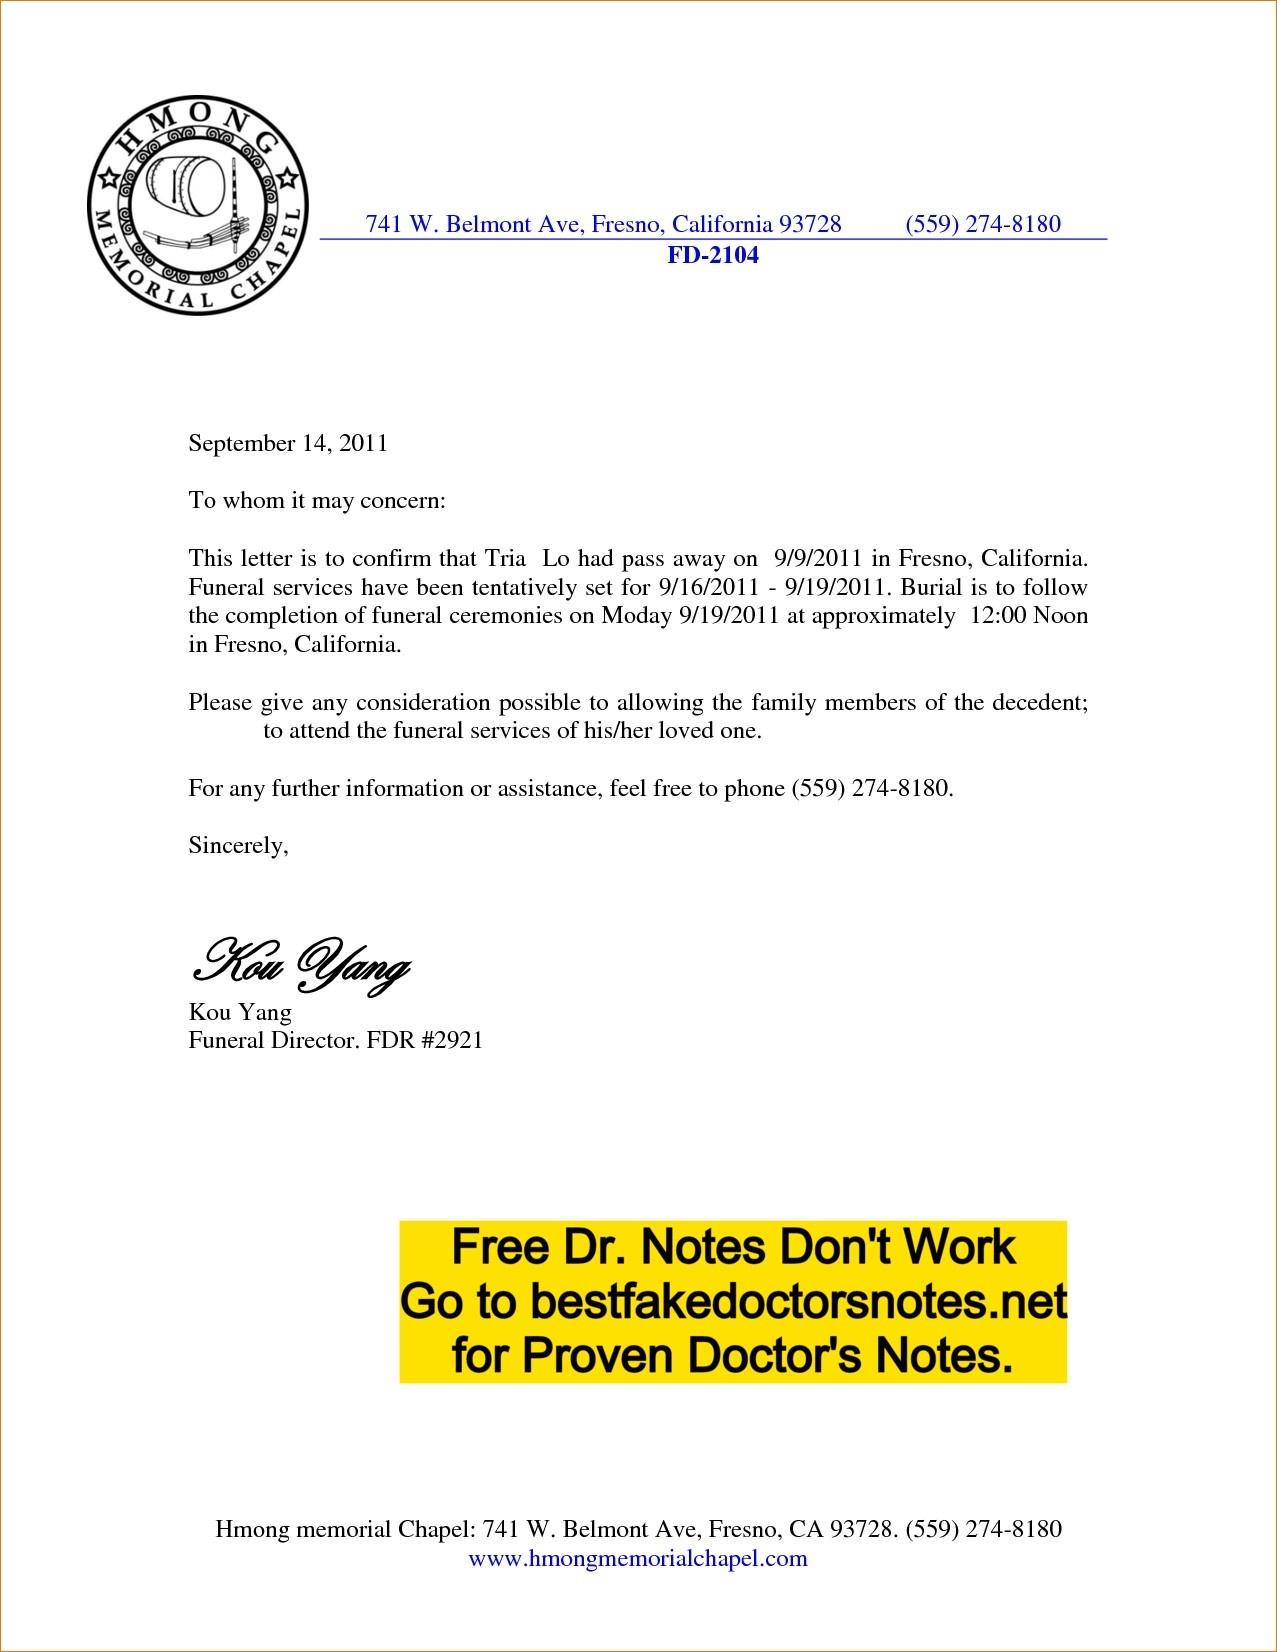 4 Easy Ways To Use A Printable Fake Doctors Note - Free Printable Doctors Note For Work